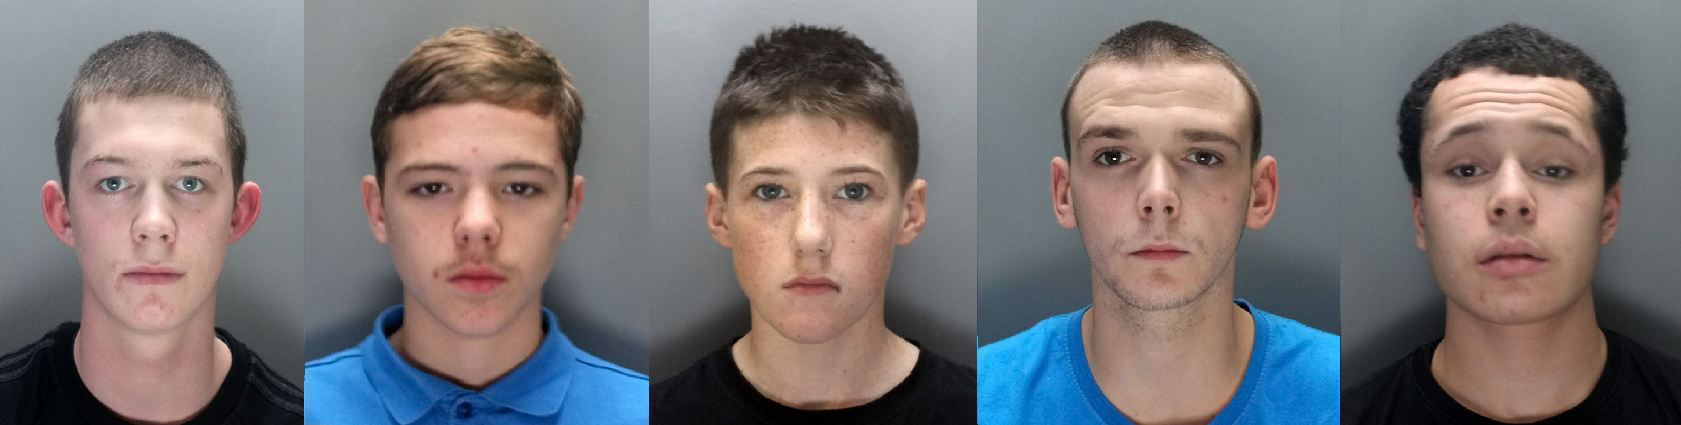 Gang of children who 'laughed and joked' during murder trial are named by judge after conviction